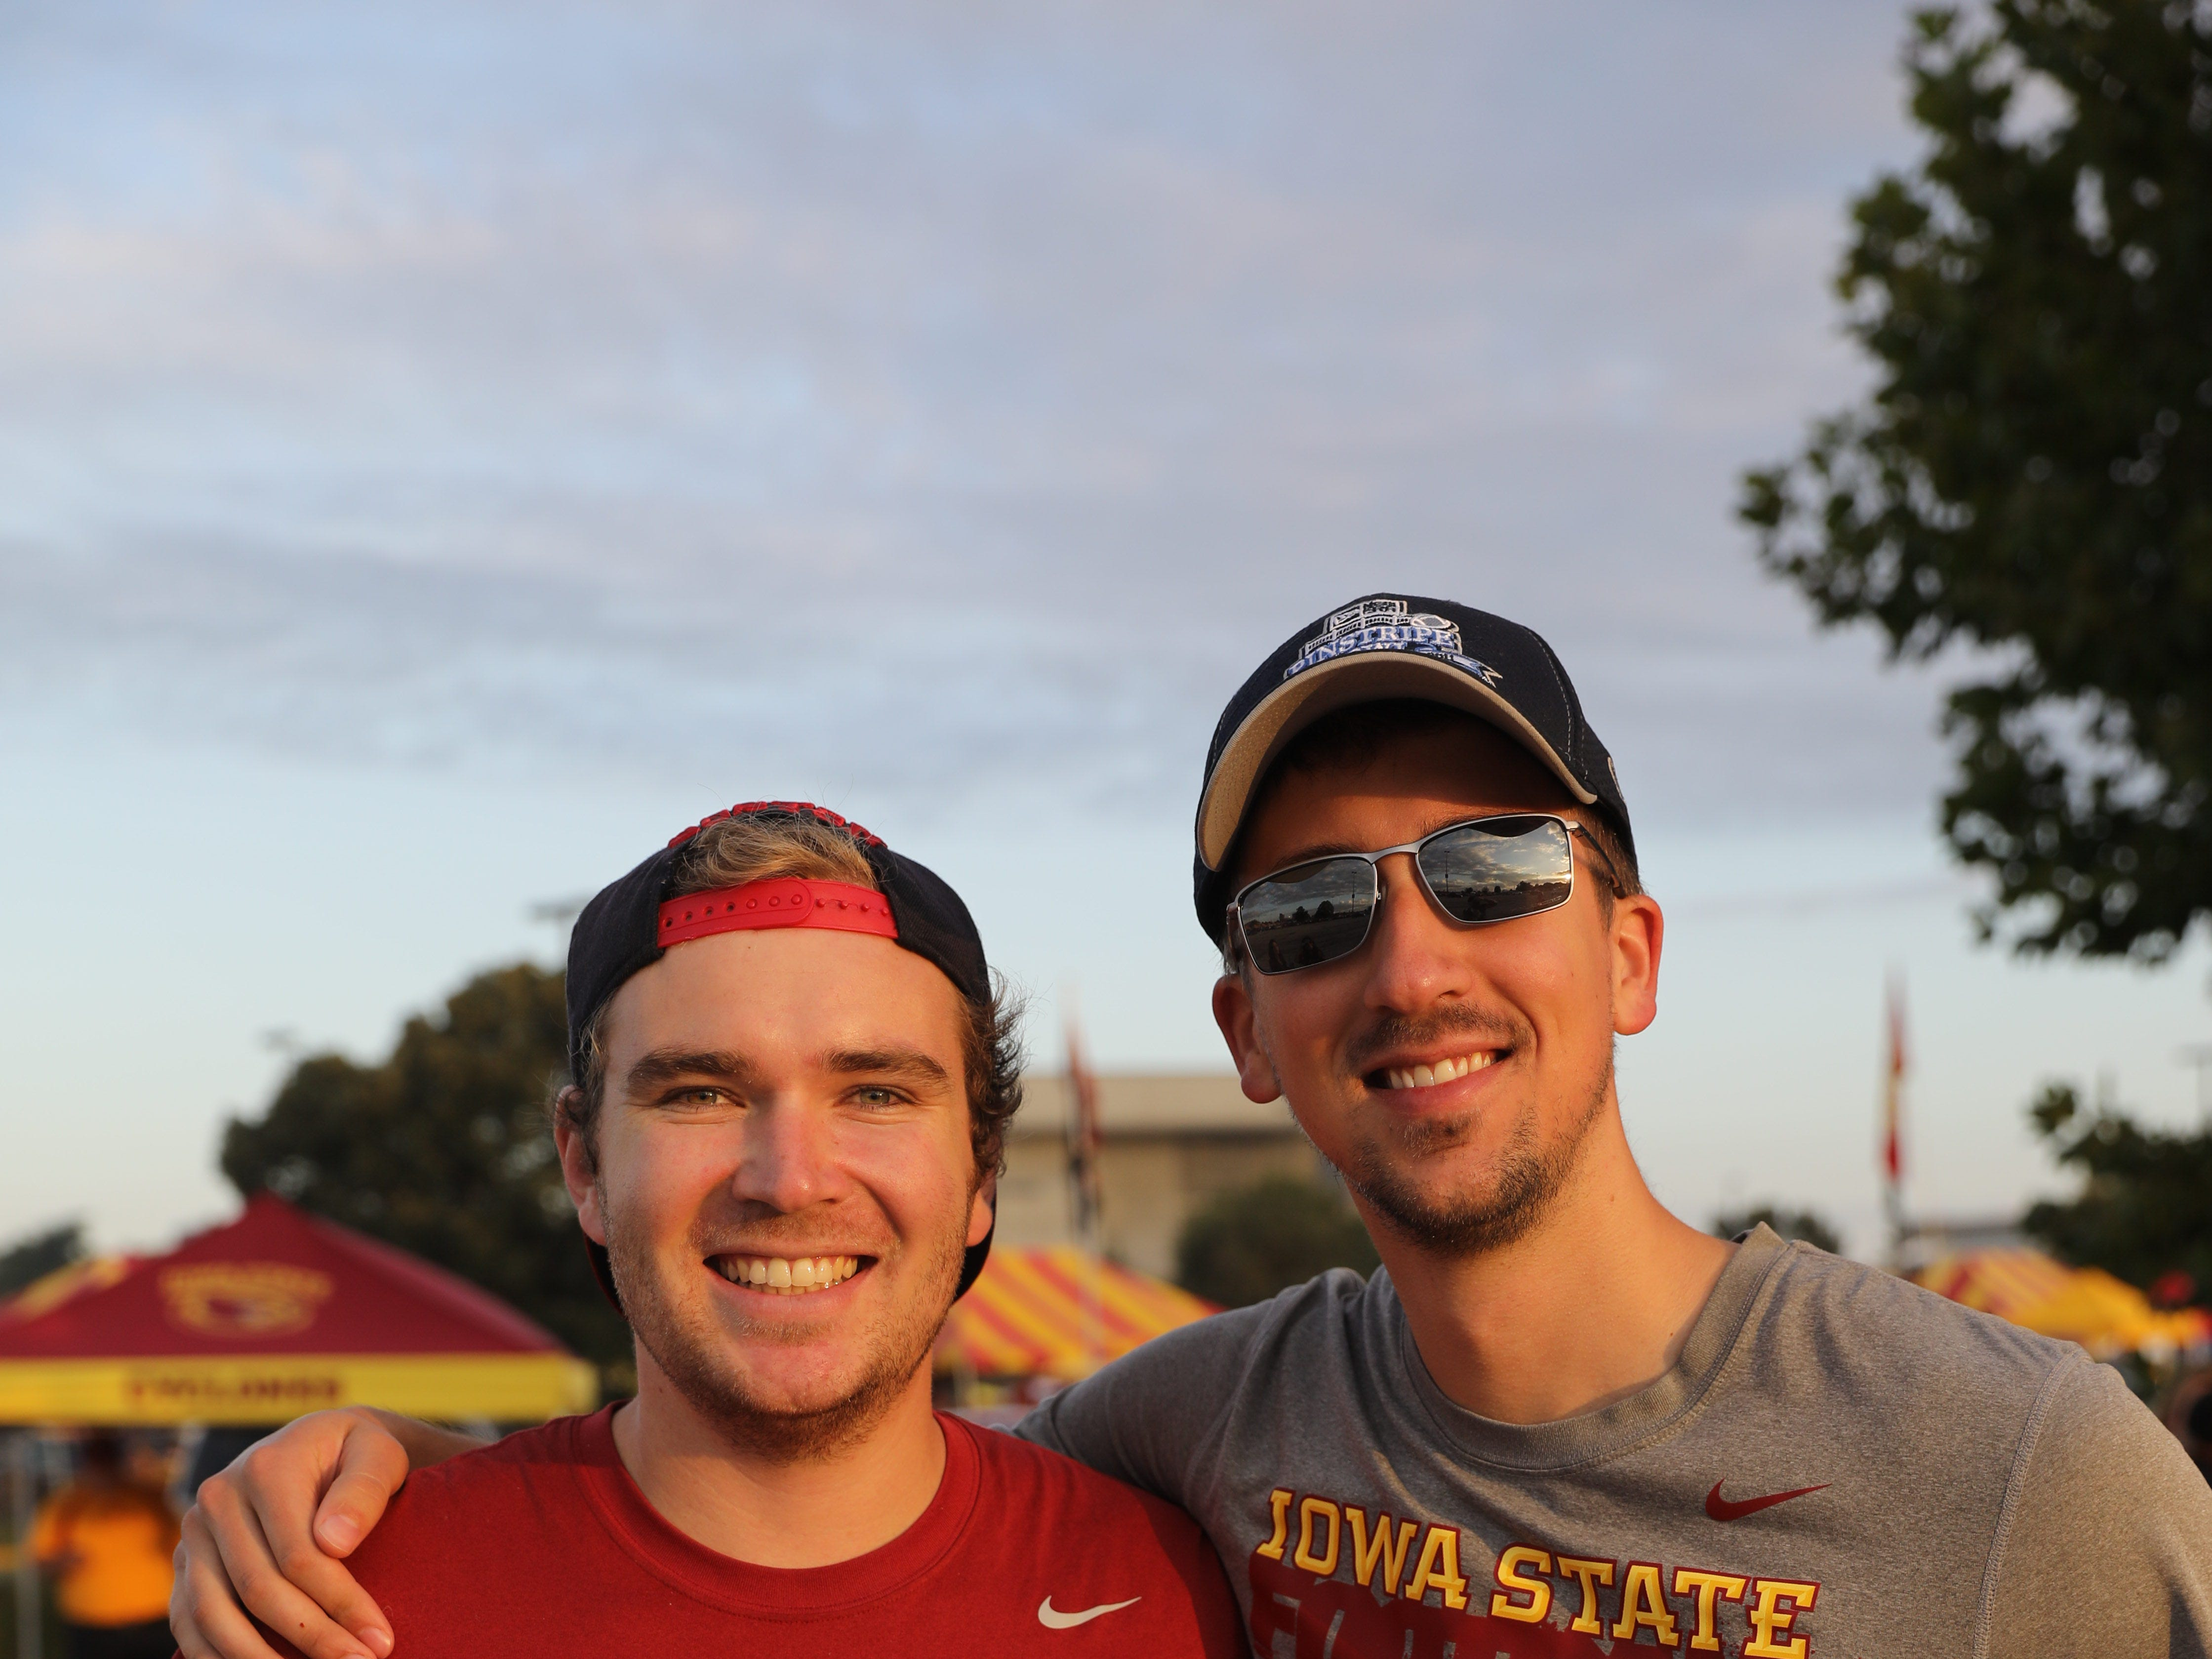 Cole Netten, 24, of Des Moines (left) and Kirby Vanderkamp, 26, of Denver, Saturday, Sept. 15, 2018, before the Iowa State football game against Oklahoma in Ames.